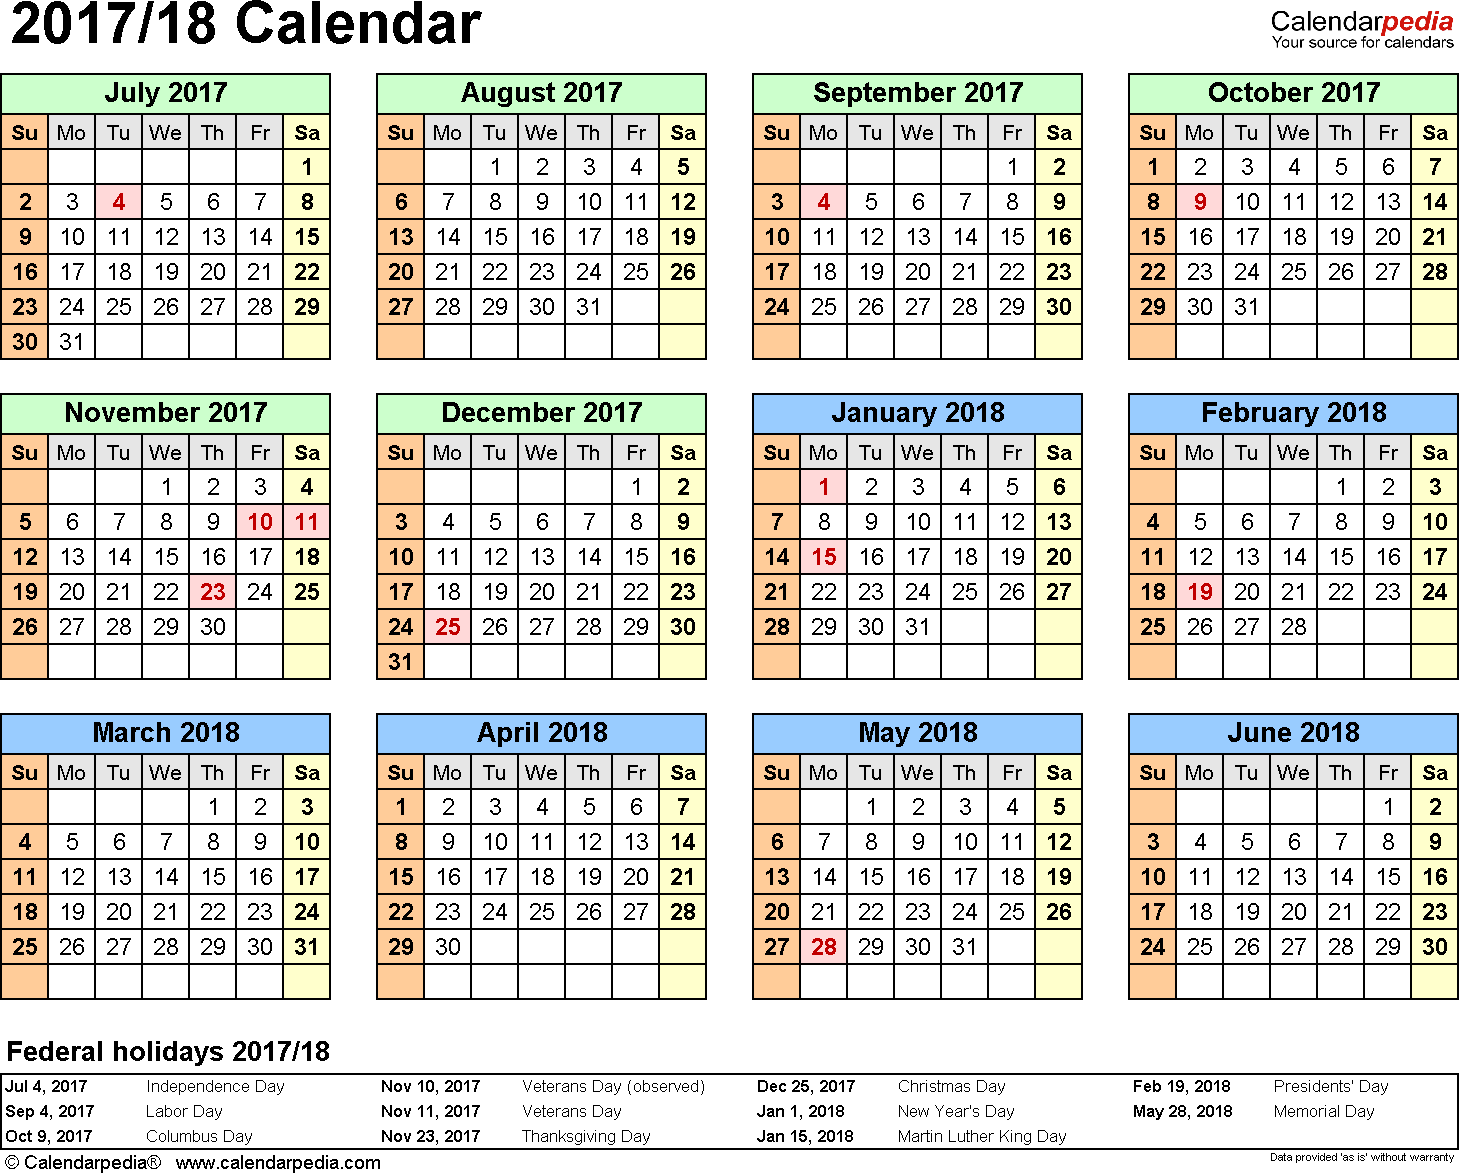 Template 3: 2017/2018 split year/half year calendar, for Microsoft Excel (.xlsx), landscape orientation, year at a glance, 1 page